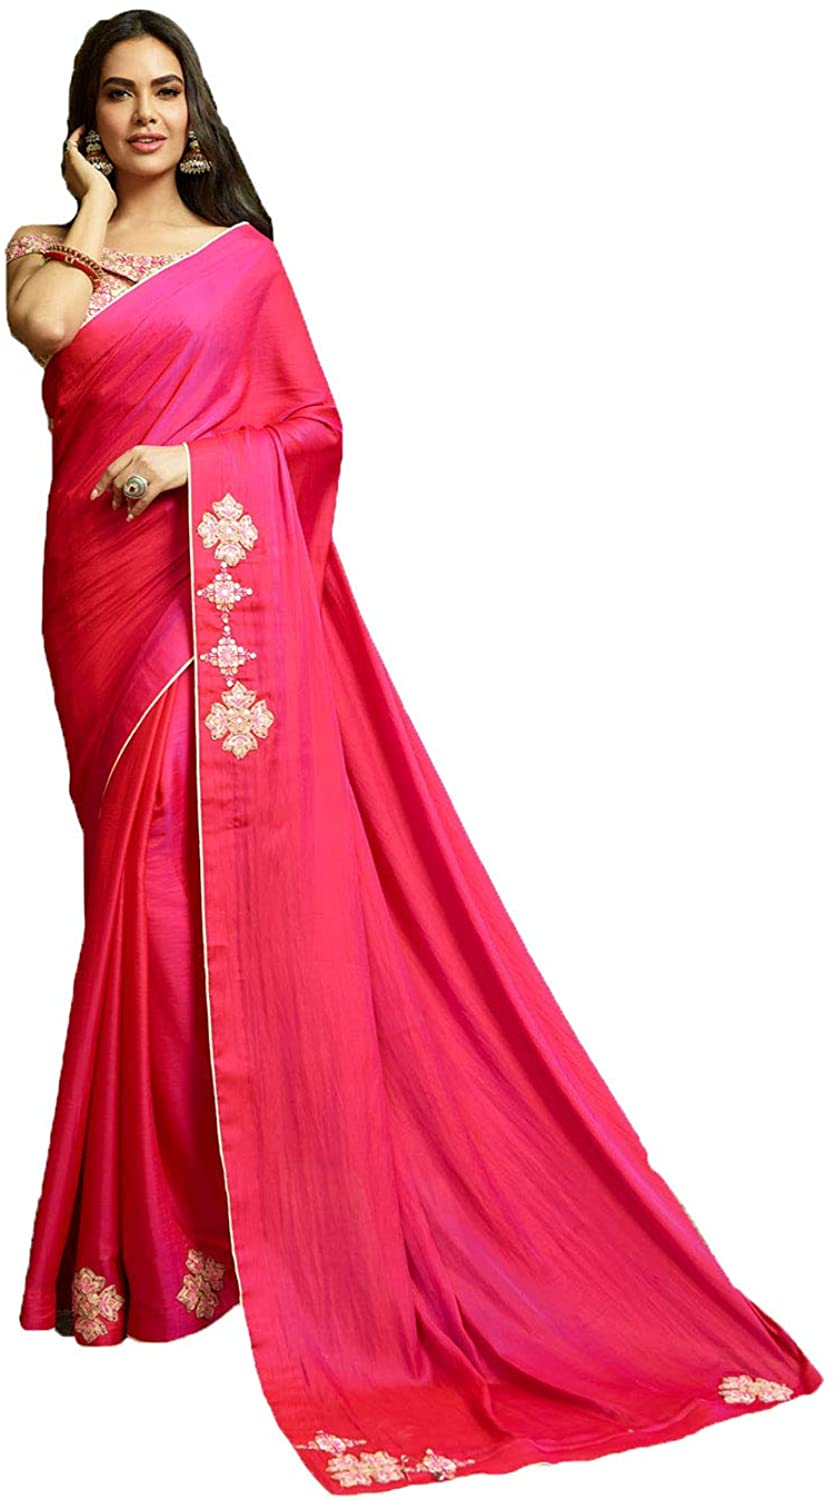 Saree for Women Bollywood Wedding Designer Pink Sari with Unstitched Blouse. ICW2523-8